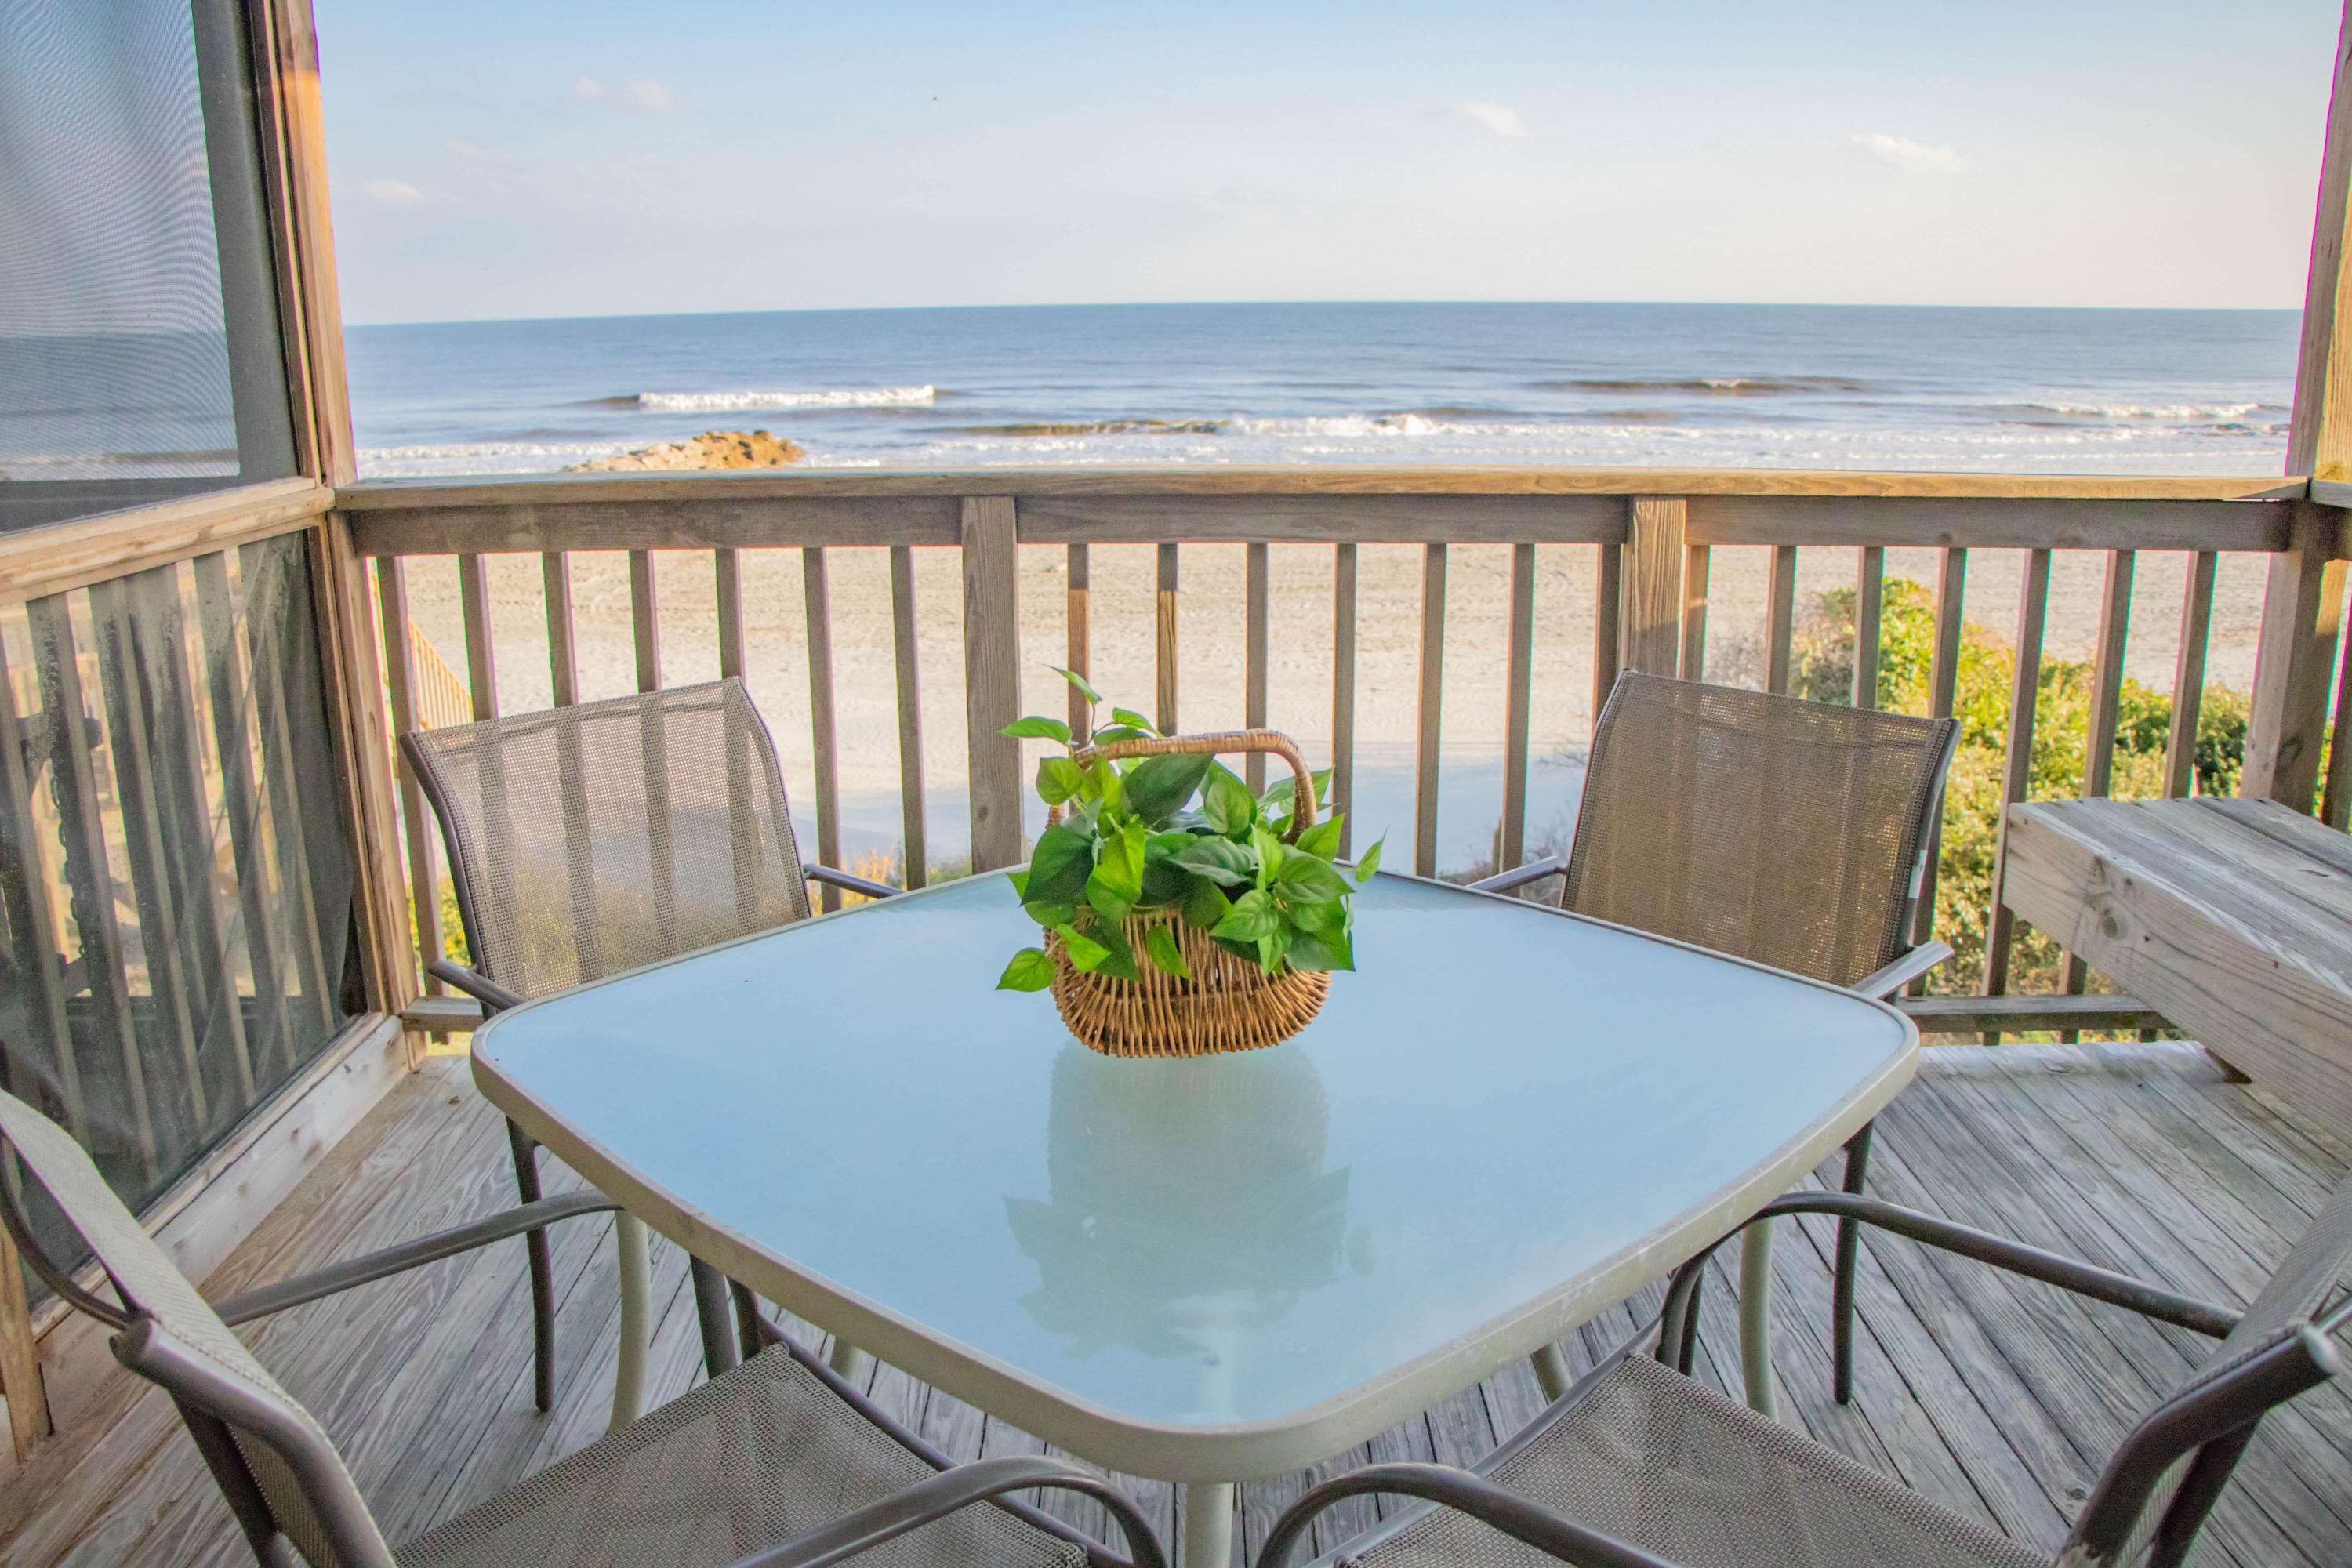 Folly Beach Homes For Sale - 1013 Arctic, Folly Beach, SC - 17